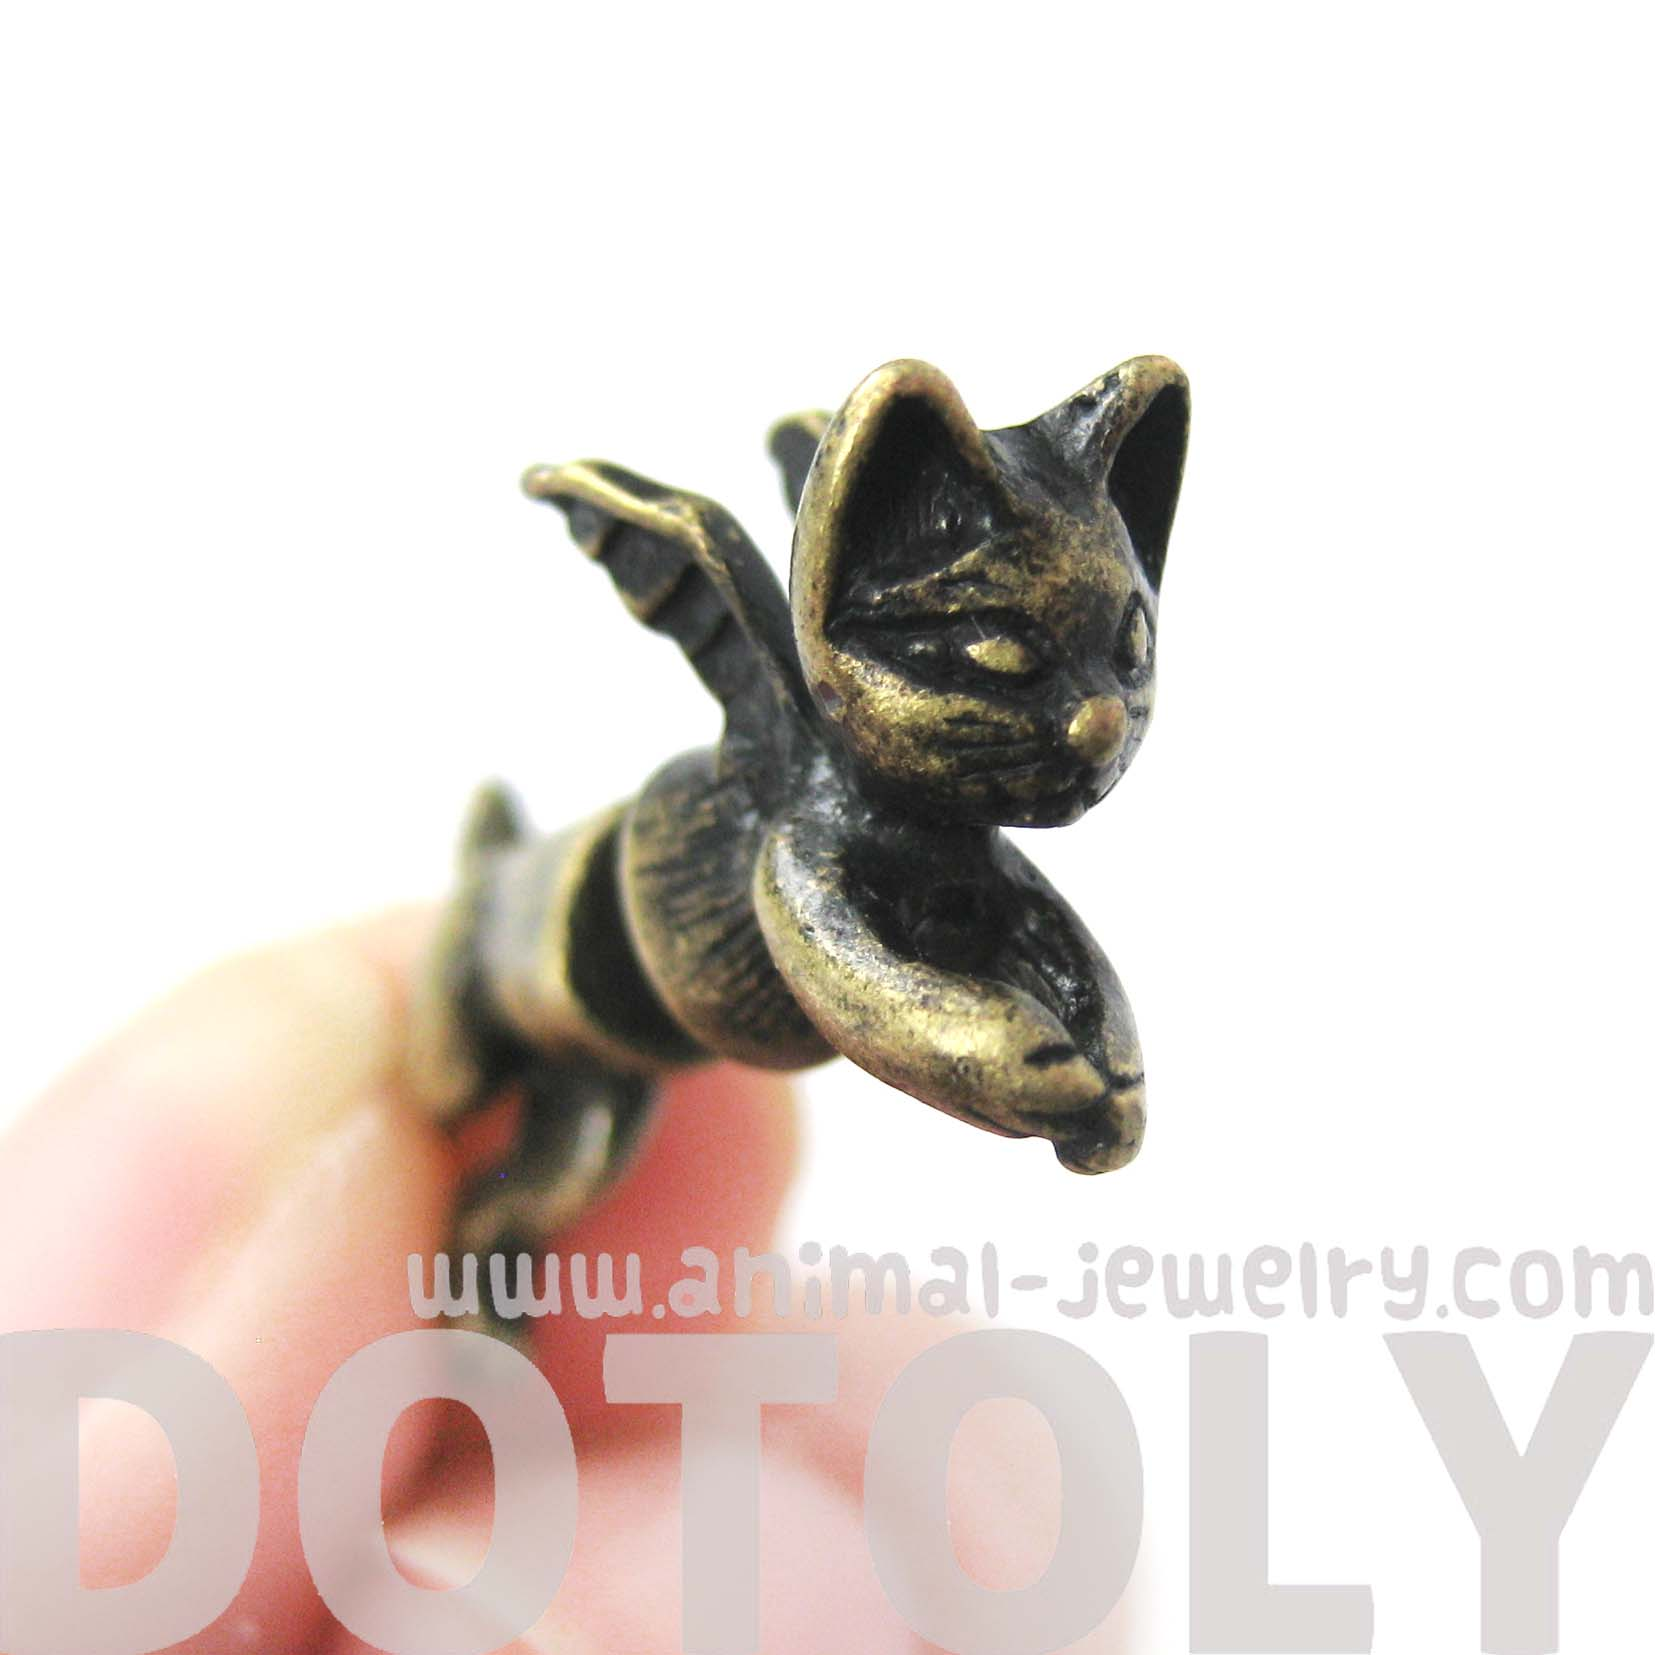 fake-gauge-earrings-kitty-cat-burglar-animal-shaped-plug-earrings-with-wings-in-brass